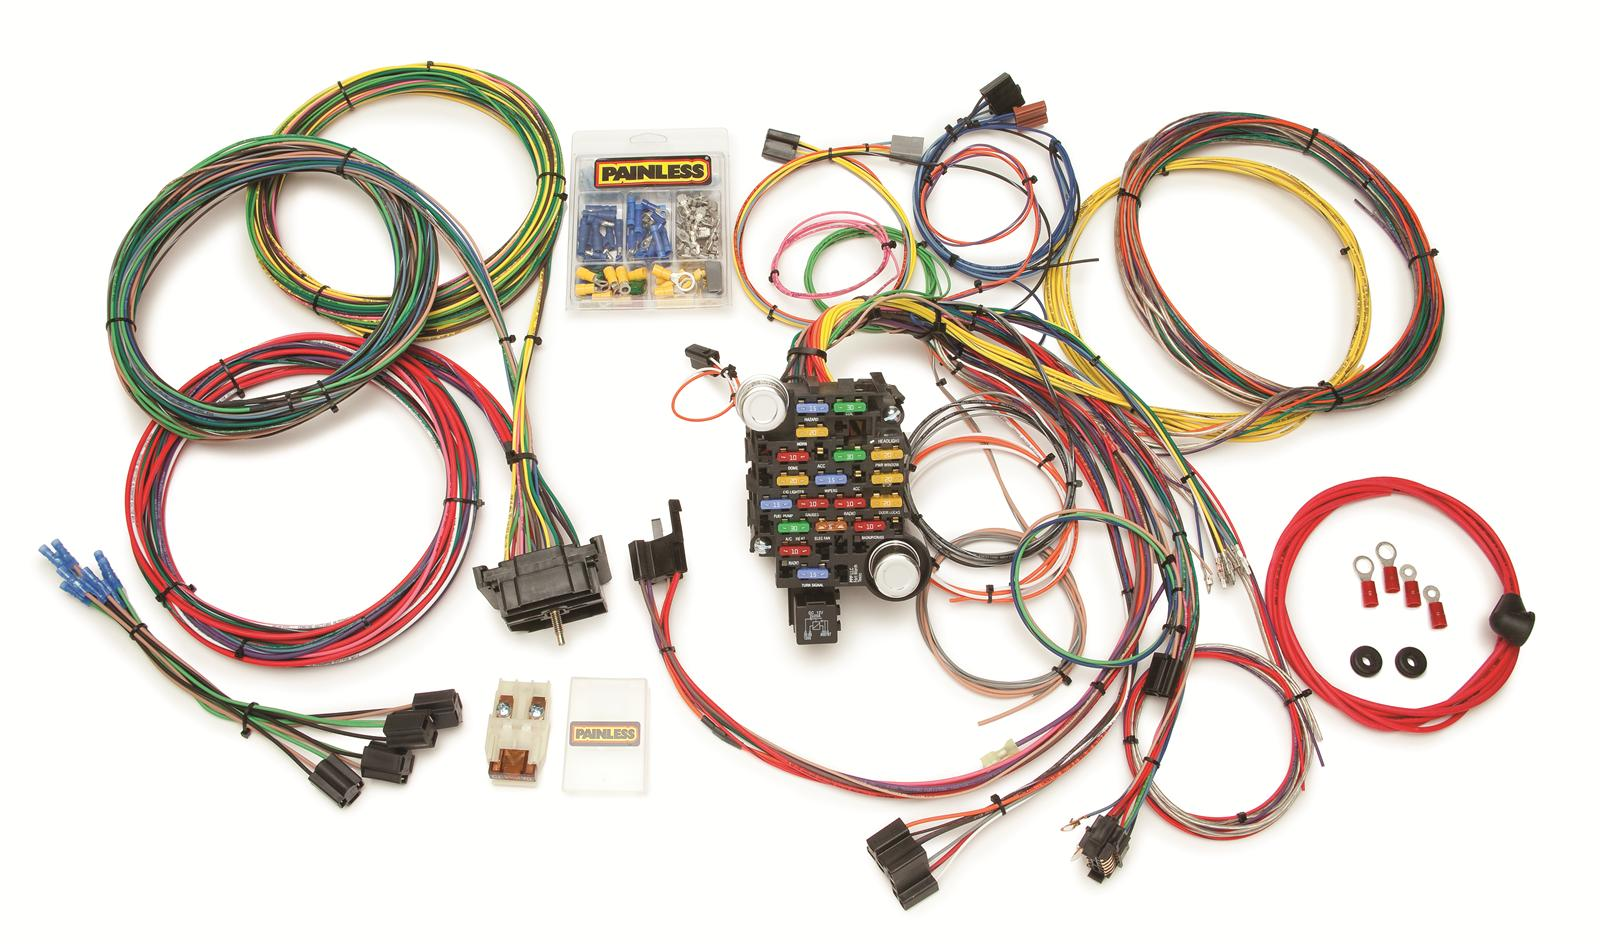 painless wiring 10206 wiring harness 18 circuit gm ebay